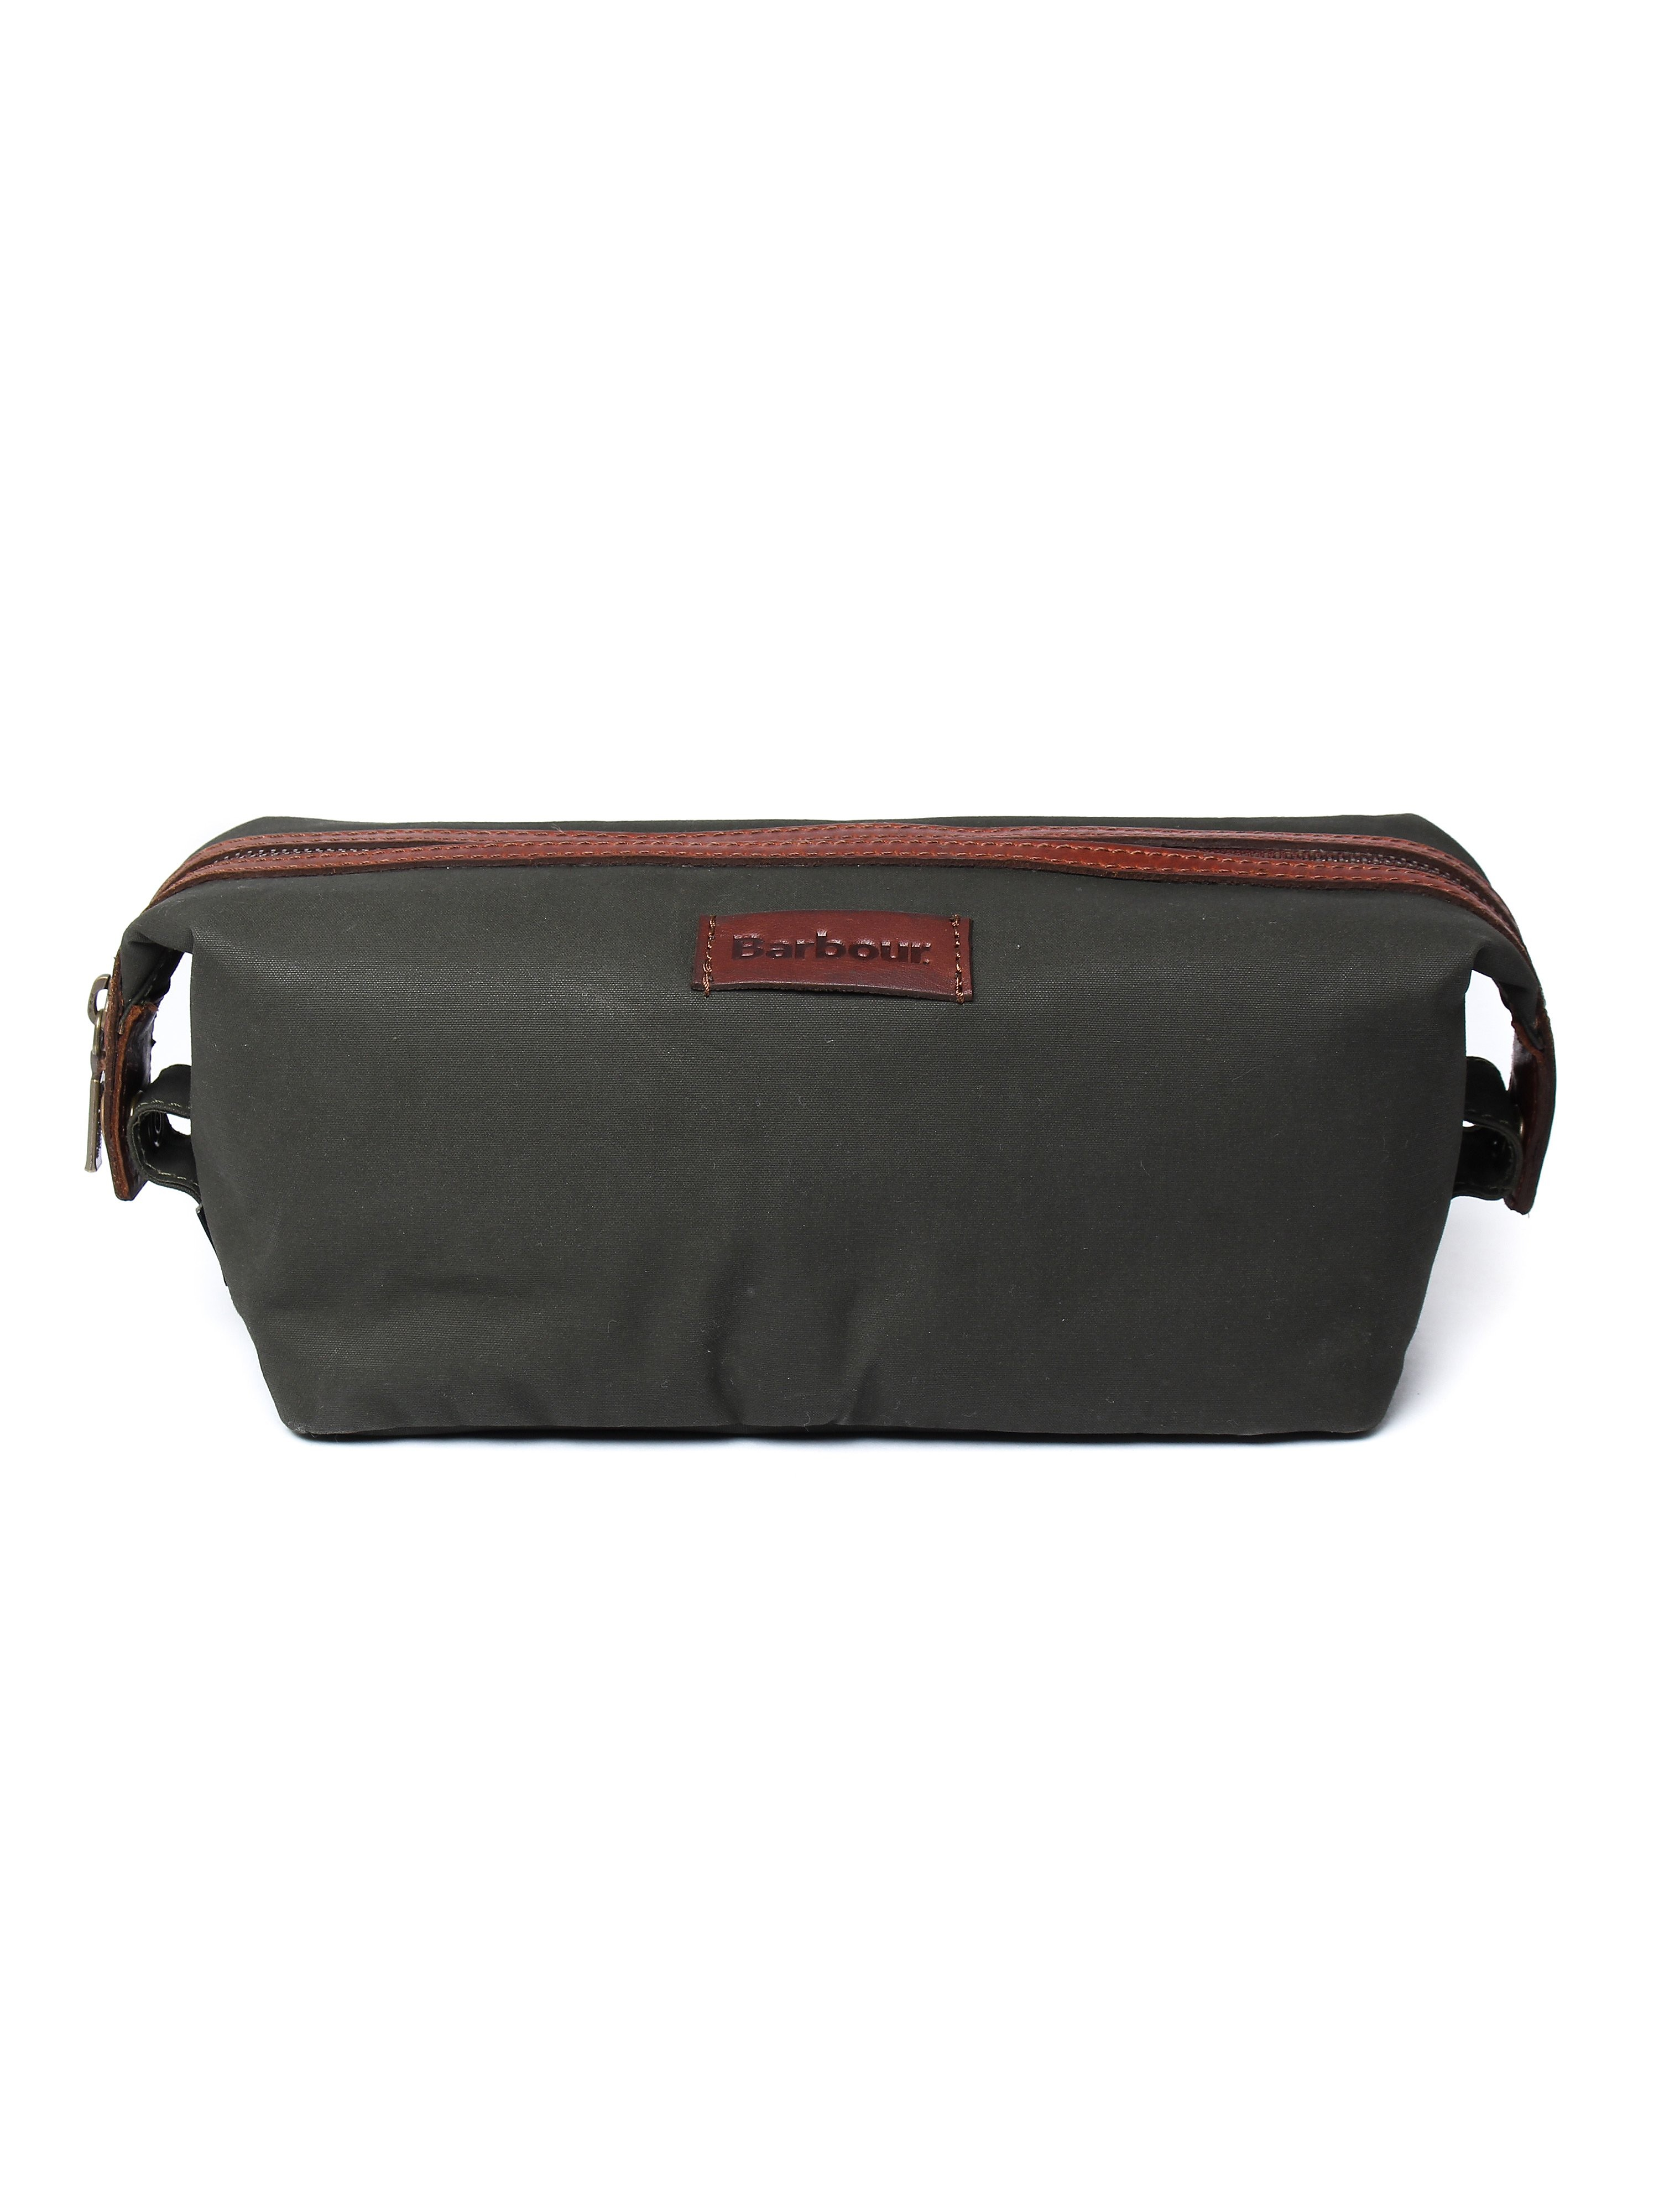 Barbour Dry Wax Convertible Wash Bag - Olive